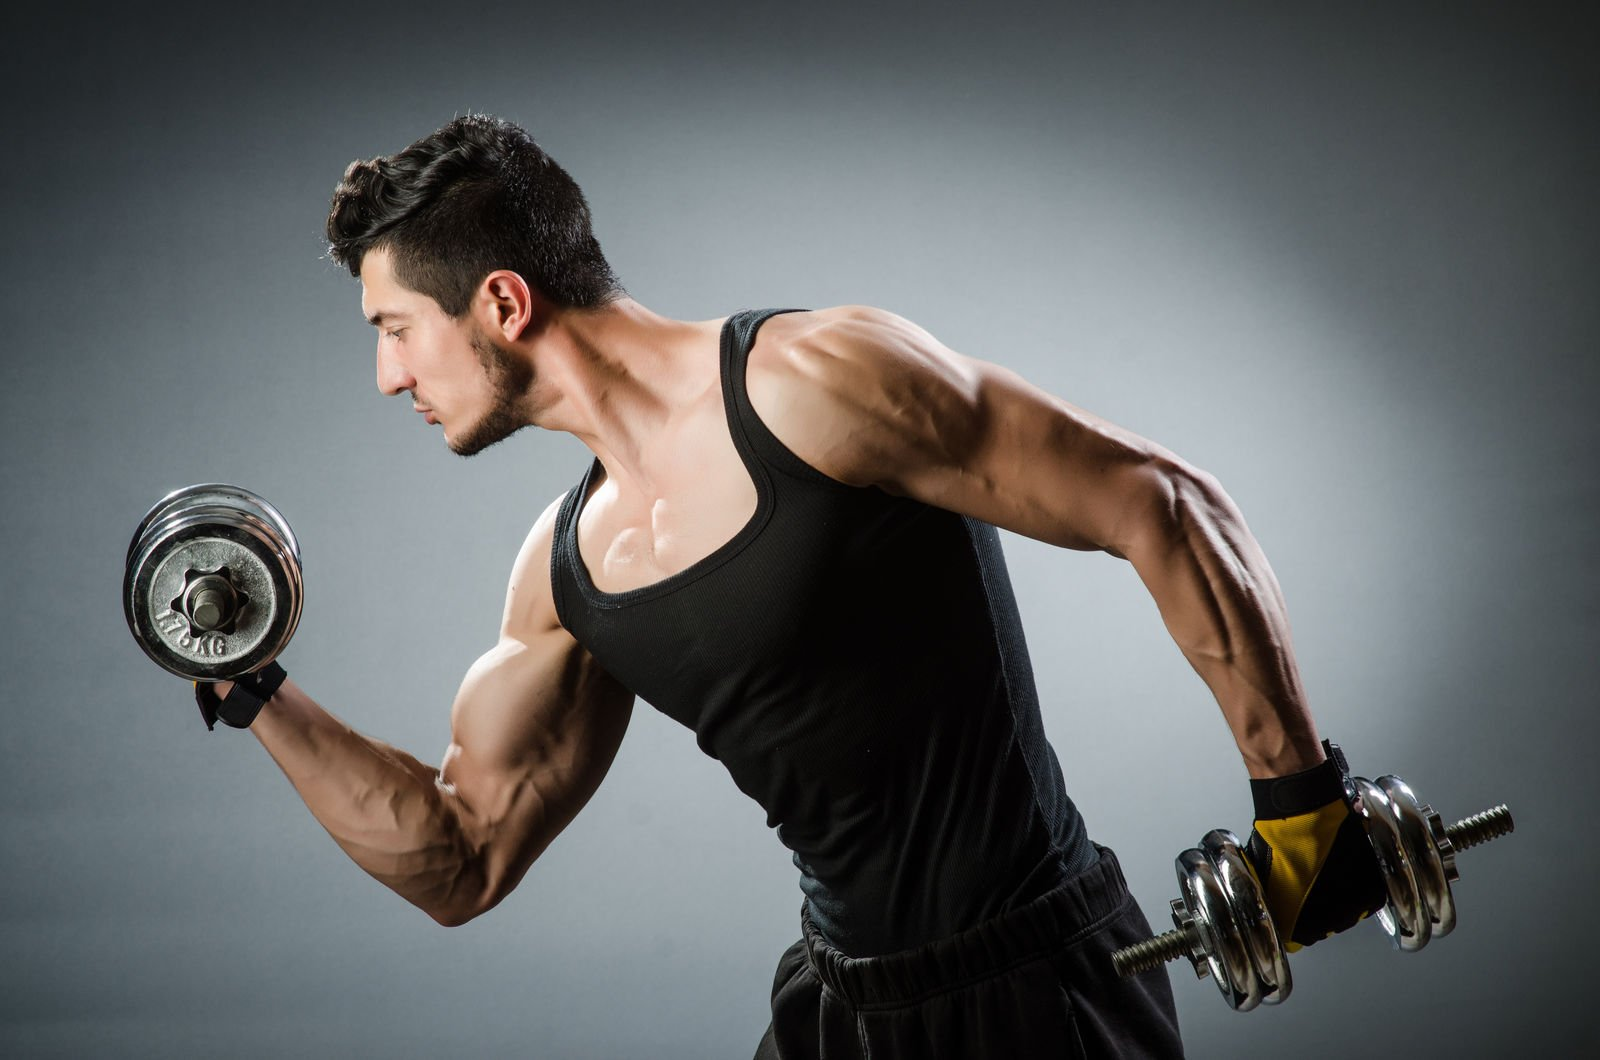 Does exercise and weight training raise testosterone levels?